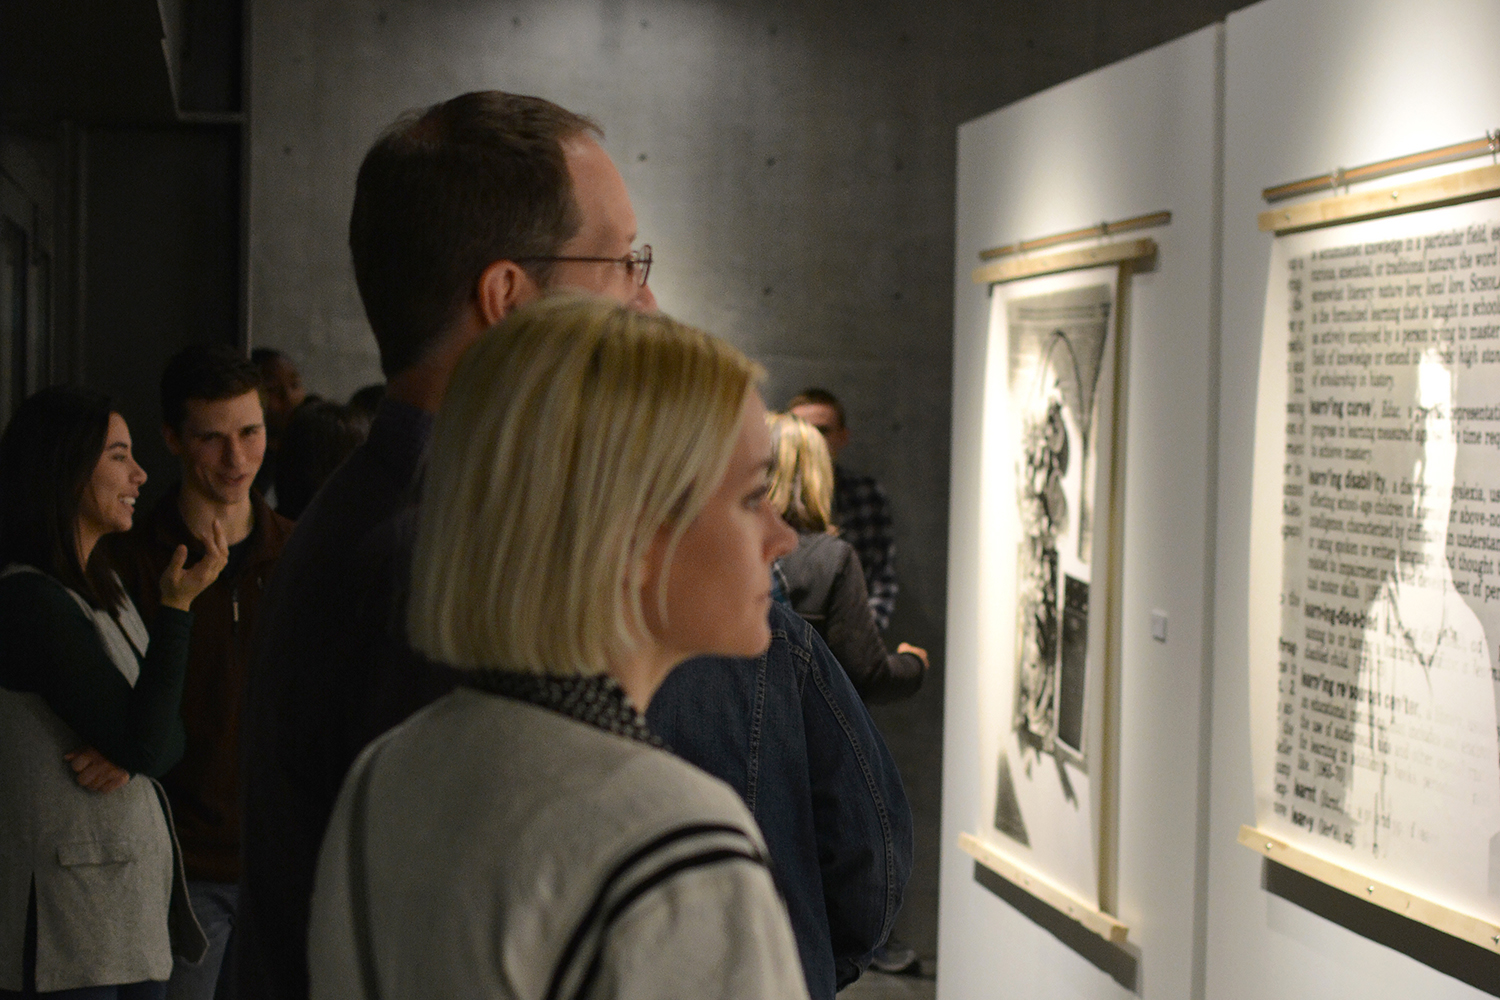 Poeple looking at the large scale gelatin silver prints.